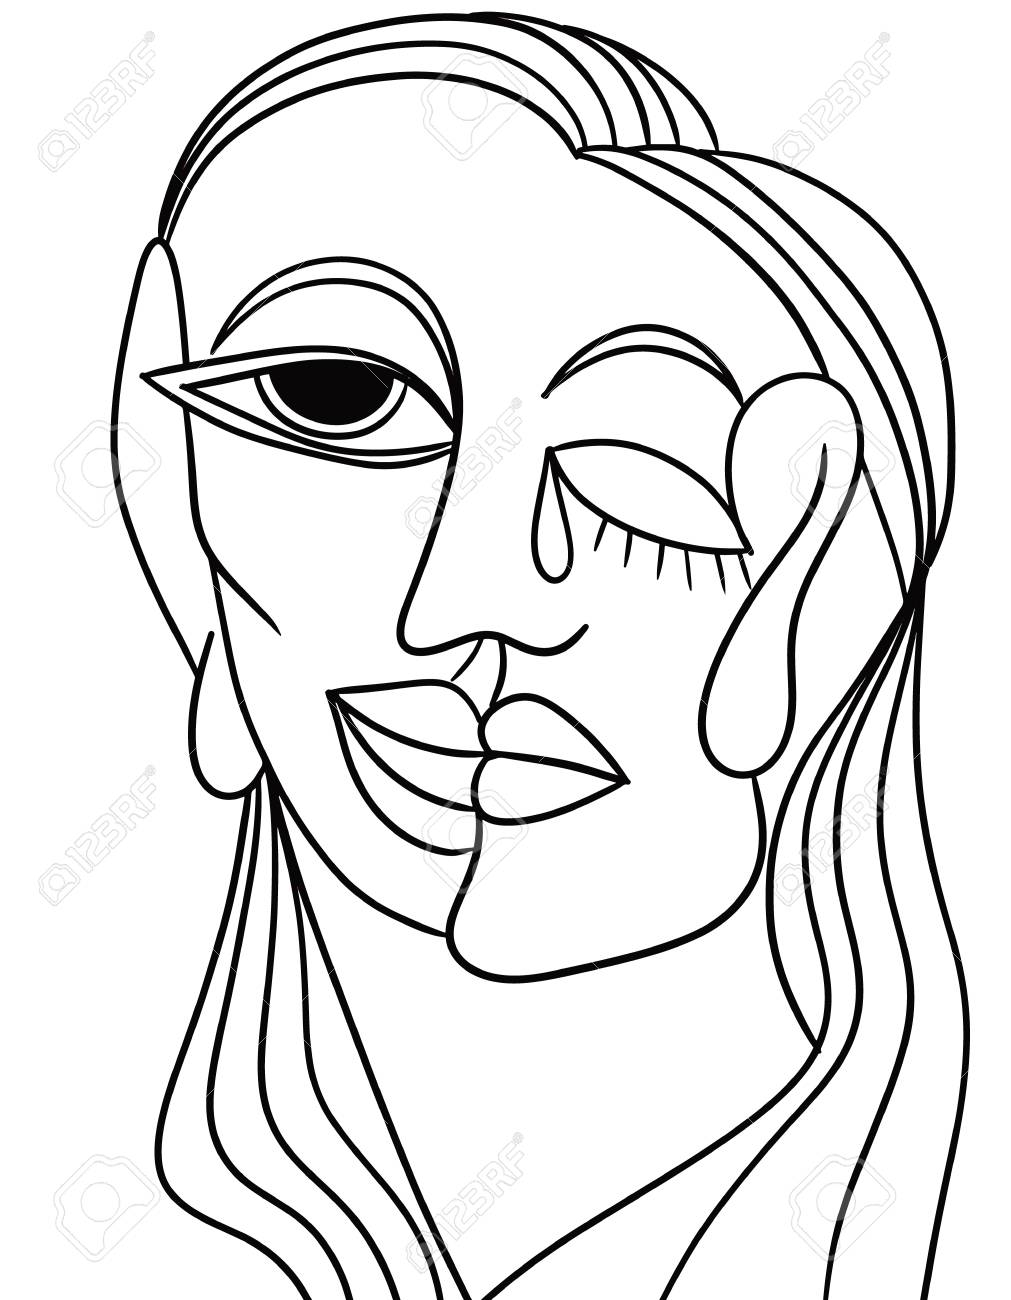 1011x1300 Abstract Face In Black And White Stock Photo, Picture And Royalty